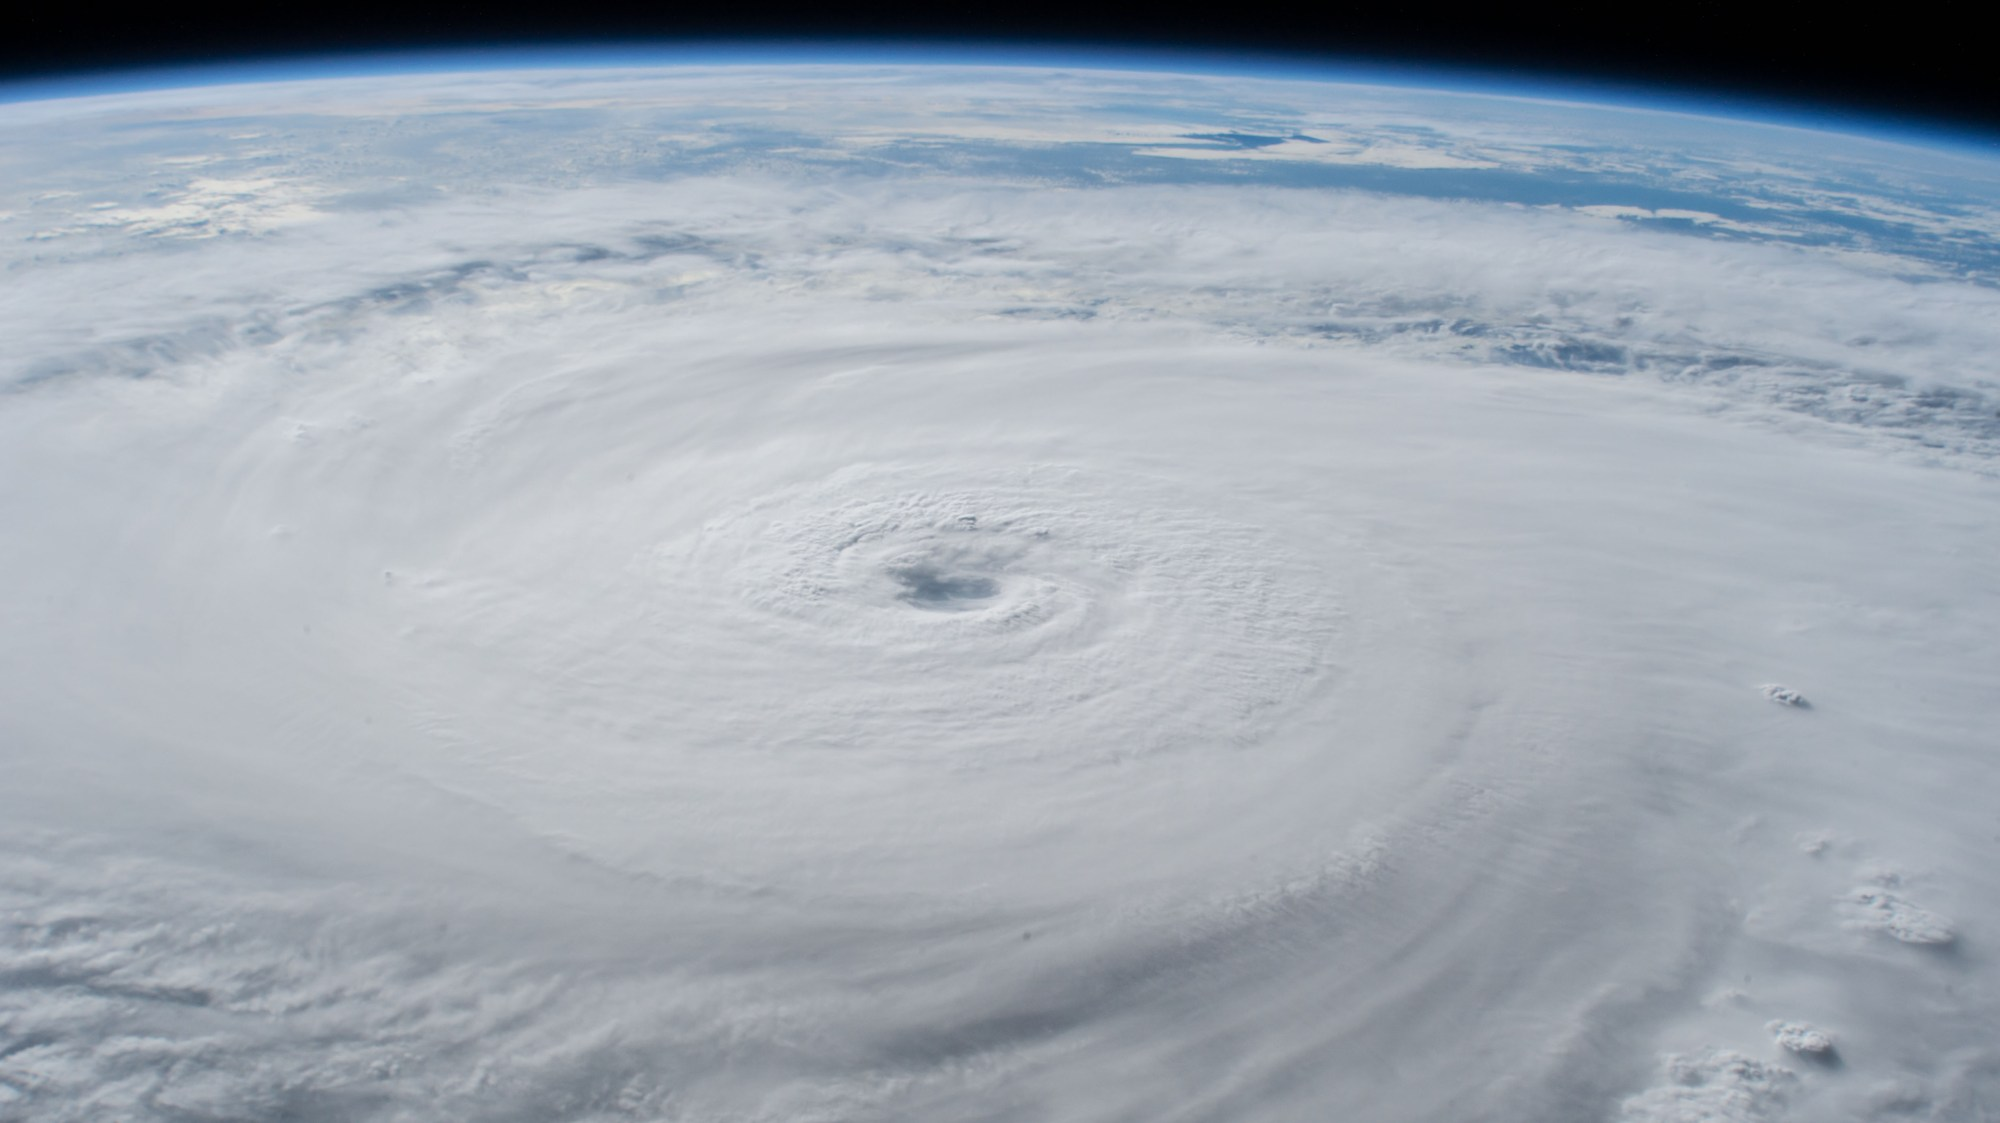 hight resolution of photohurricane lane with its well defined eye photographed as a category 5 storm southwest of the hawaiian islands as the international space station